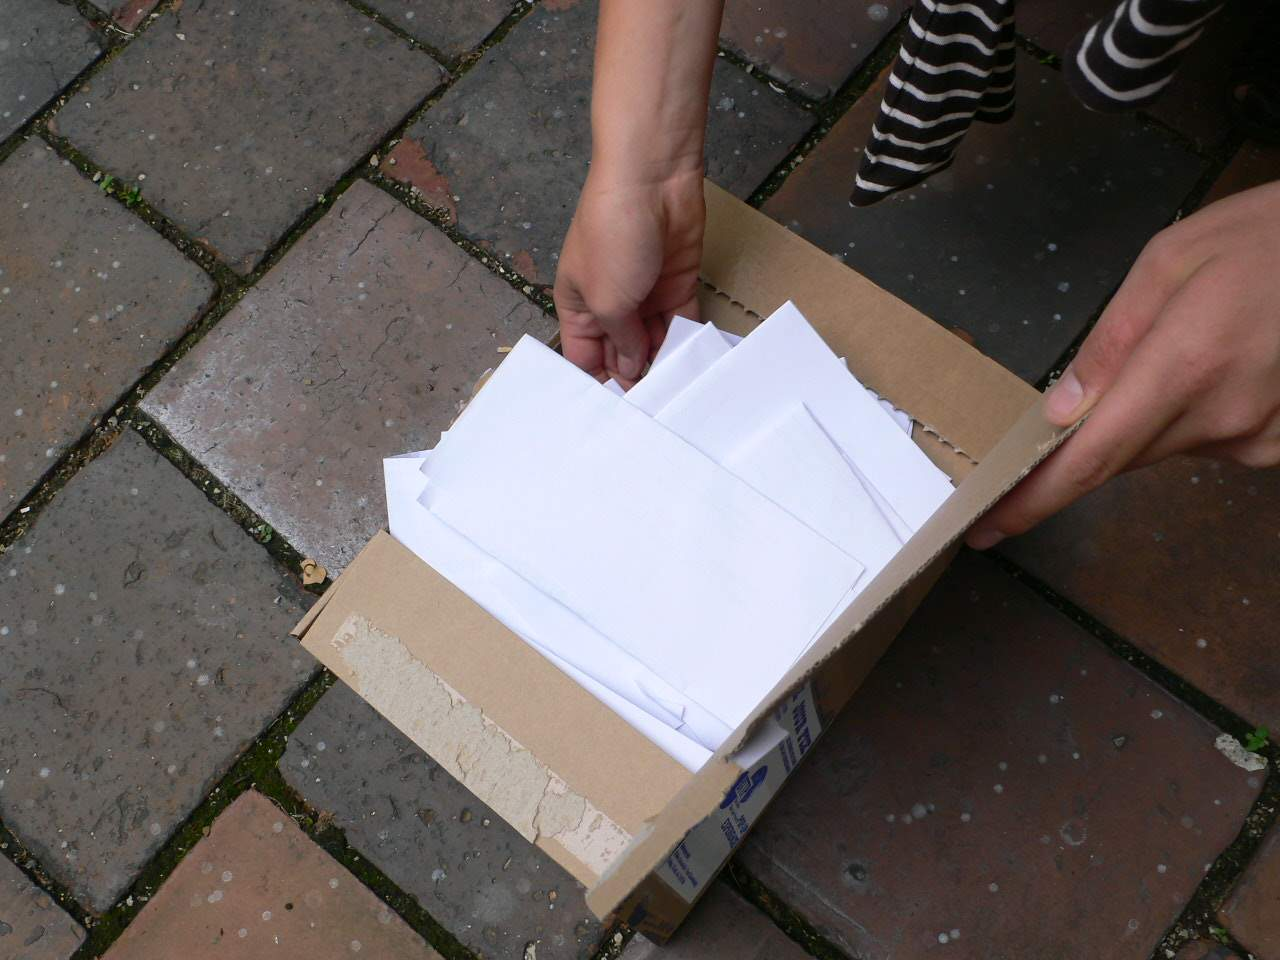 gluecksfee_frauke_zabel_jf2-box_003.jpg